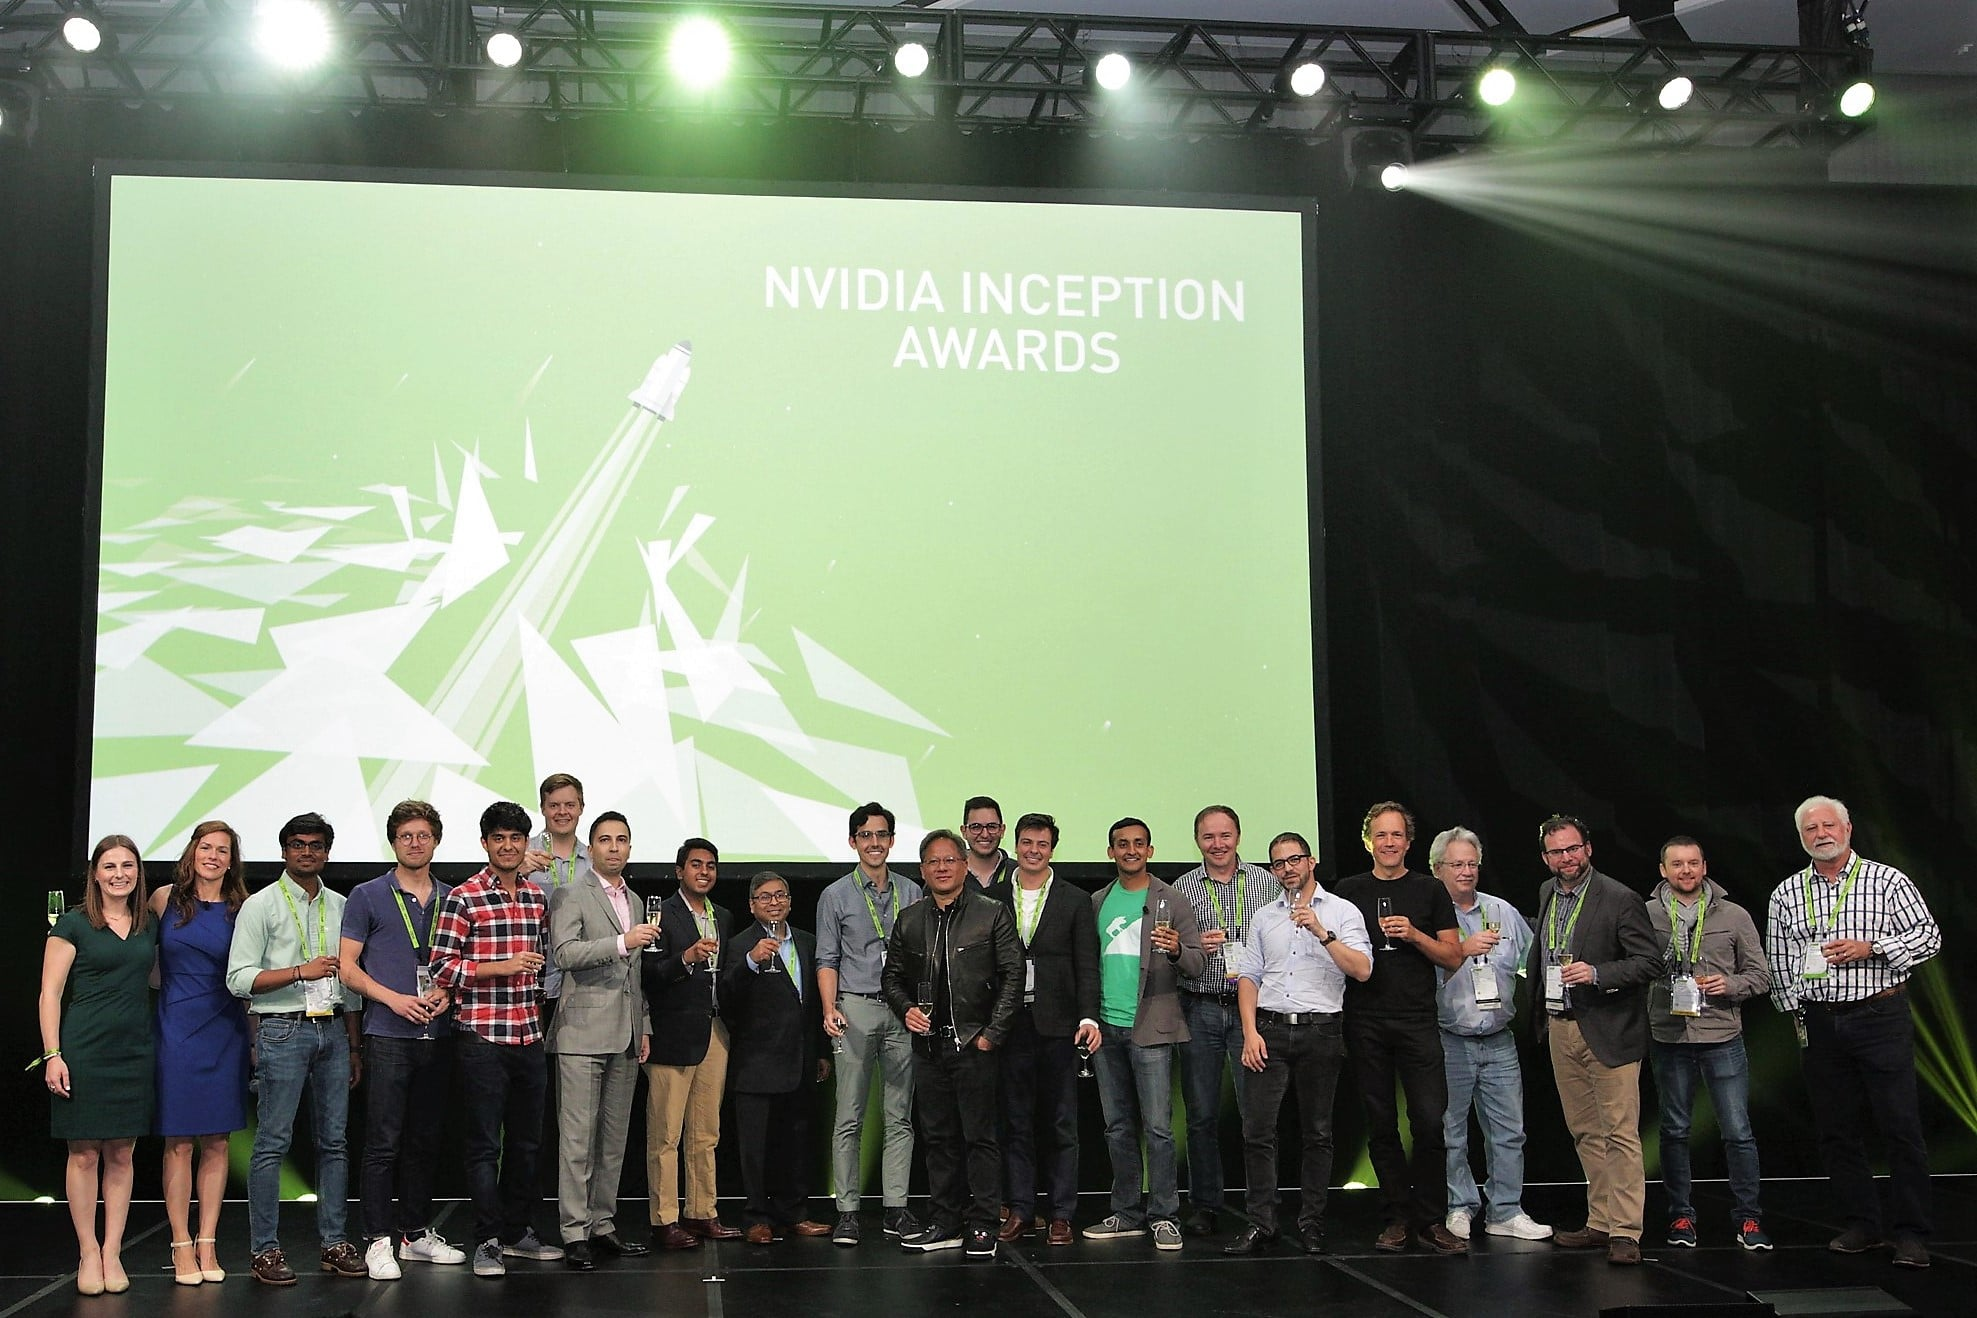 Winners in the NVIDIA Inception competition take the stage.